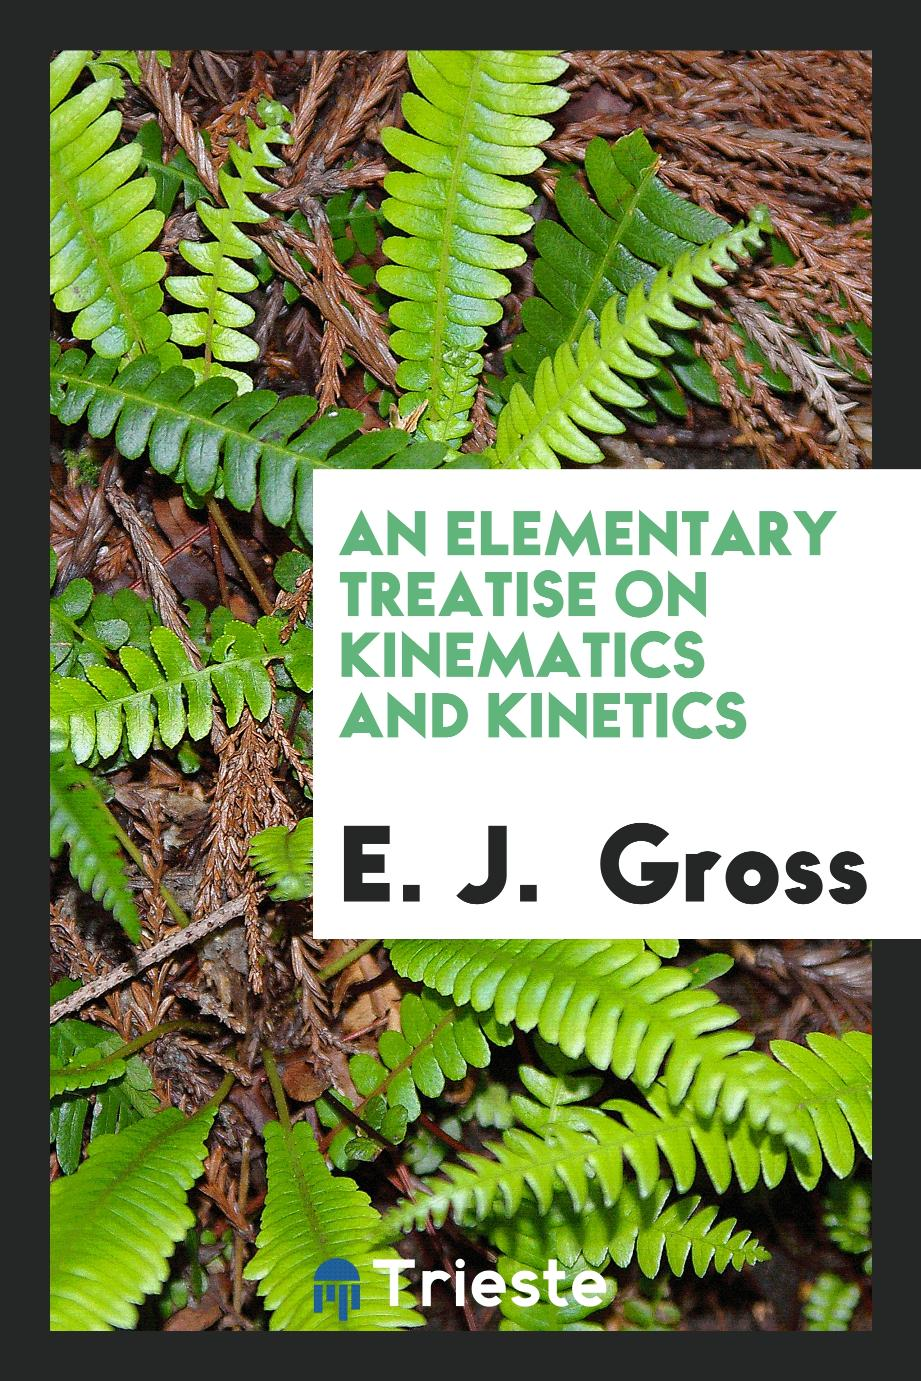 An Elementary Treatise on Kinematics and Kinetics